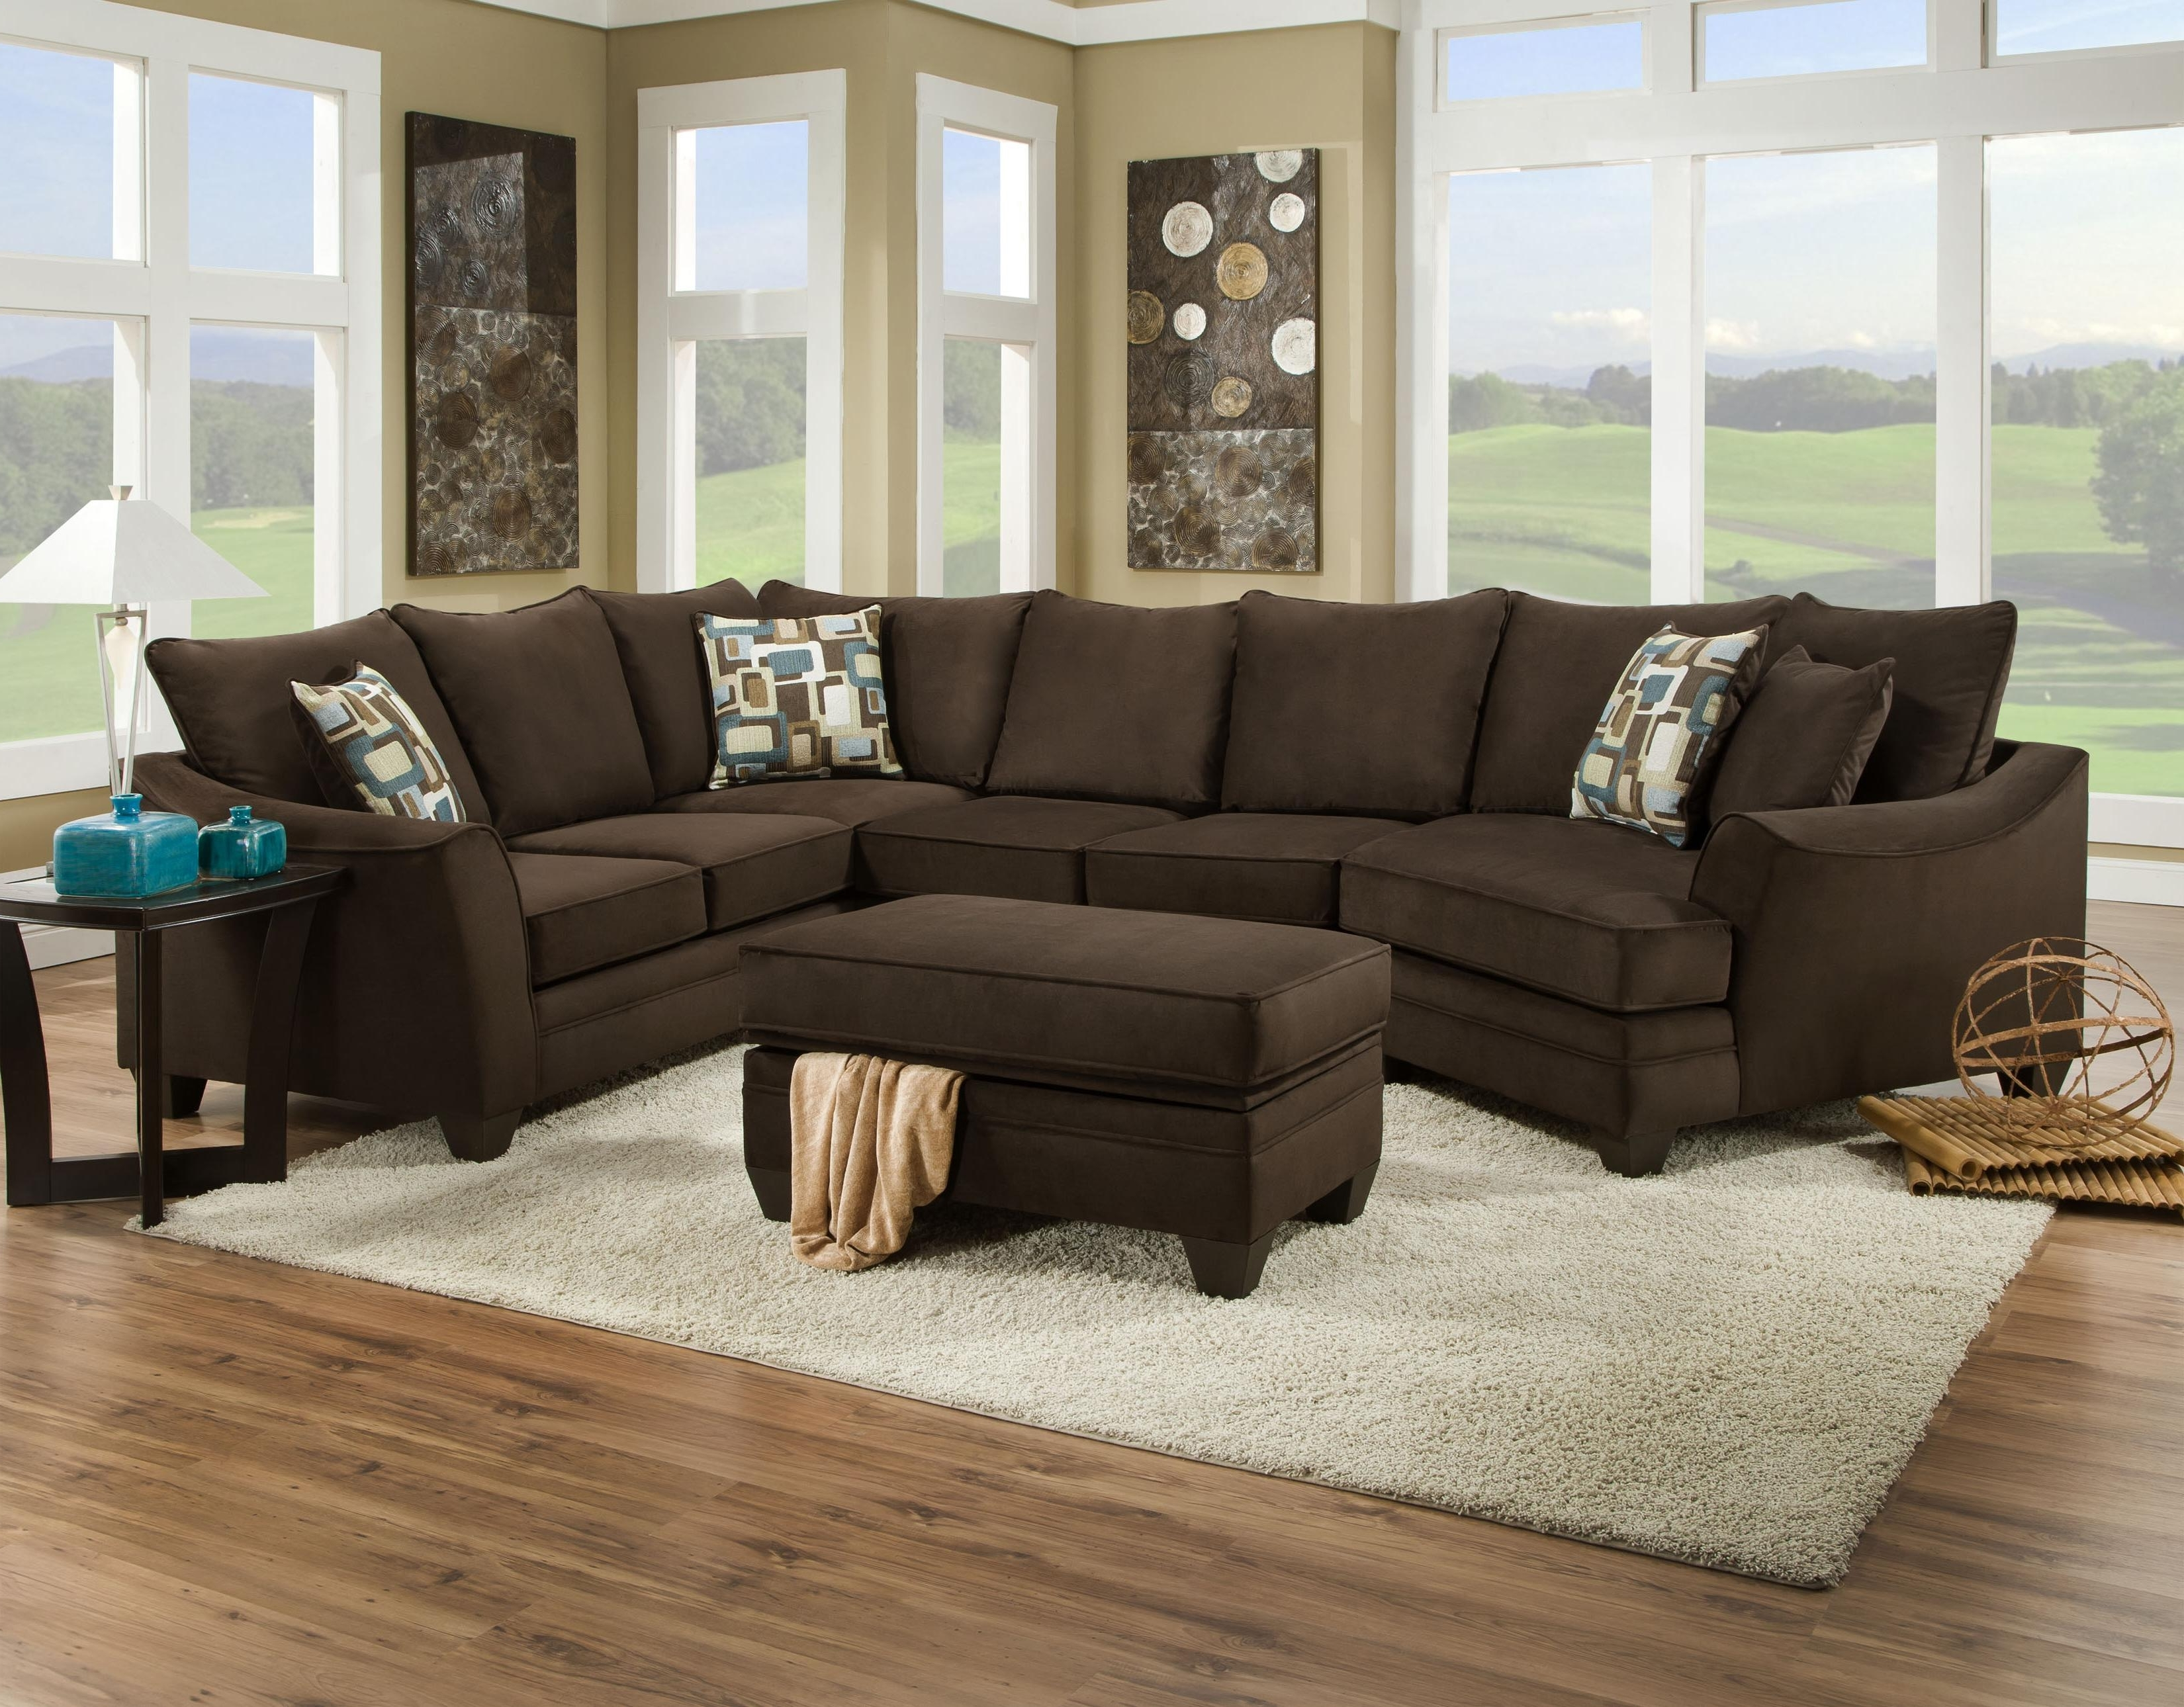 Greenville Nc Sectional Sofas In Most Recent American Furniture 3810 Sectional Sofa That Seats 5 With Left Side (View 14 of 20)